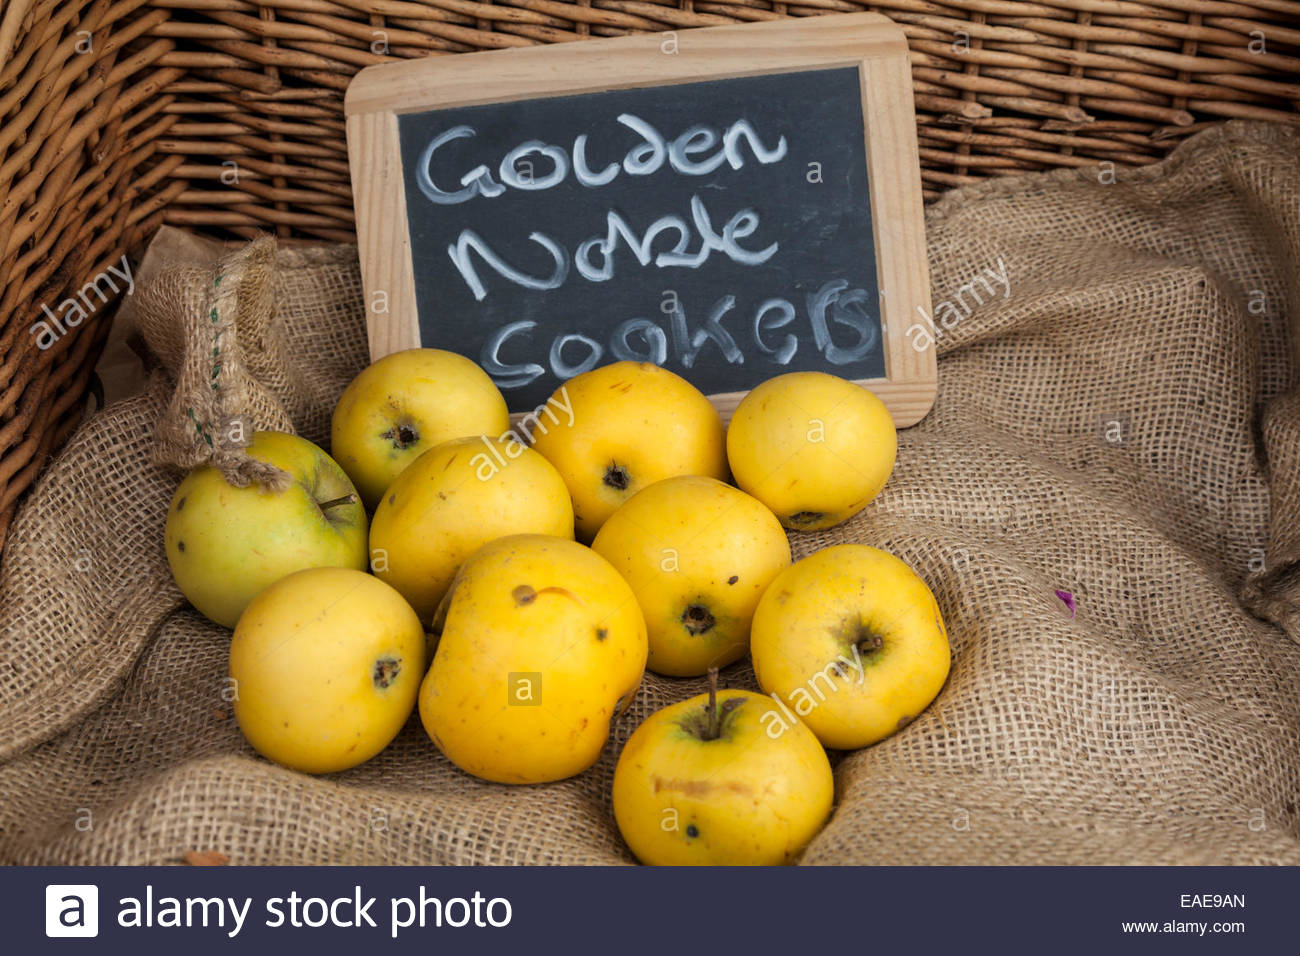 Cooking Apples - variety is Golden Noble - Stock Image